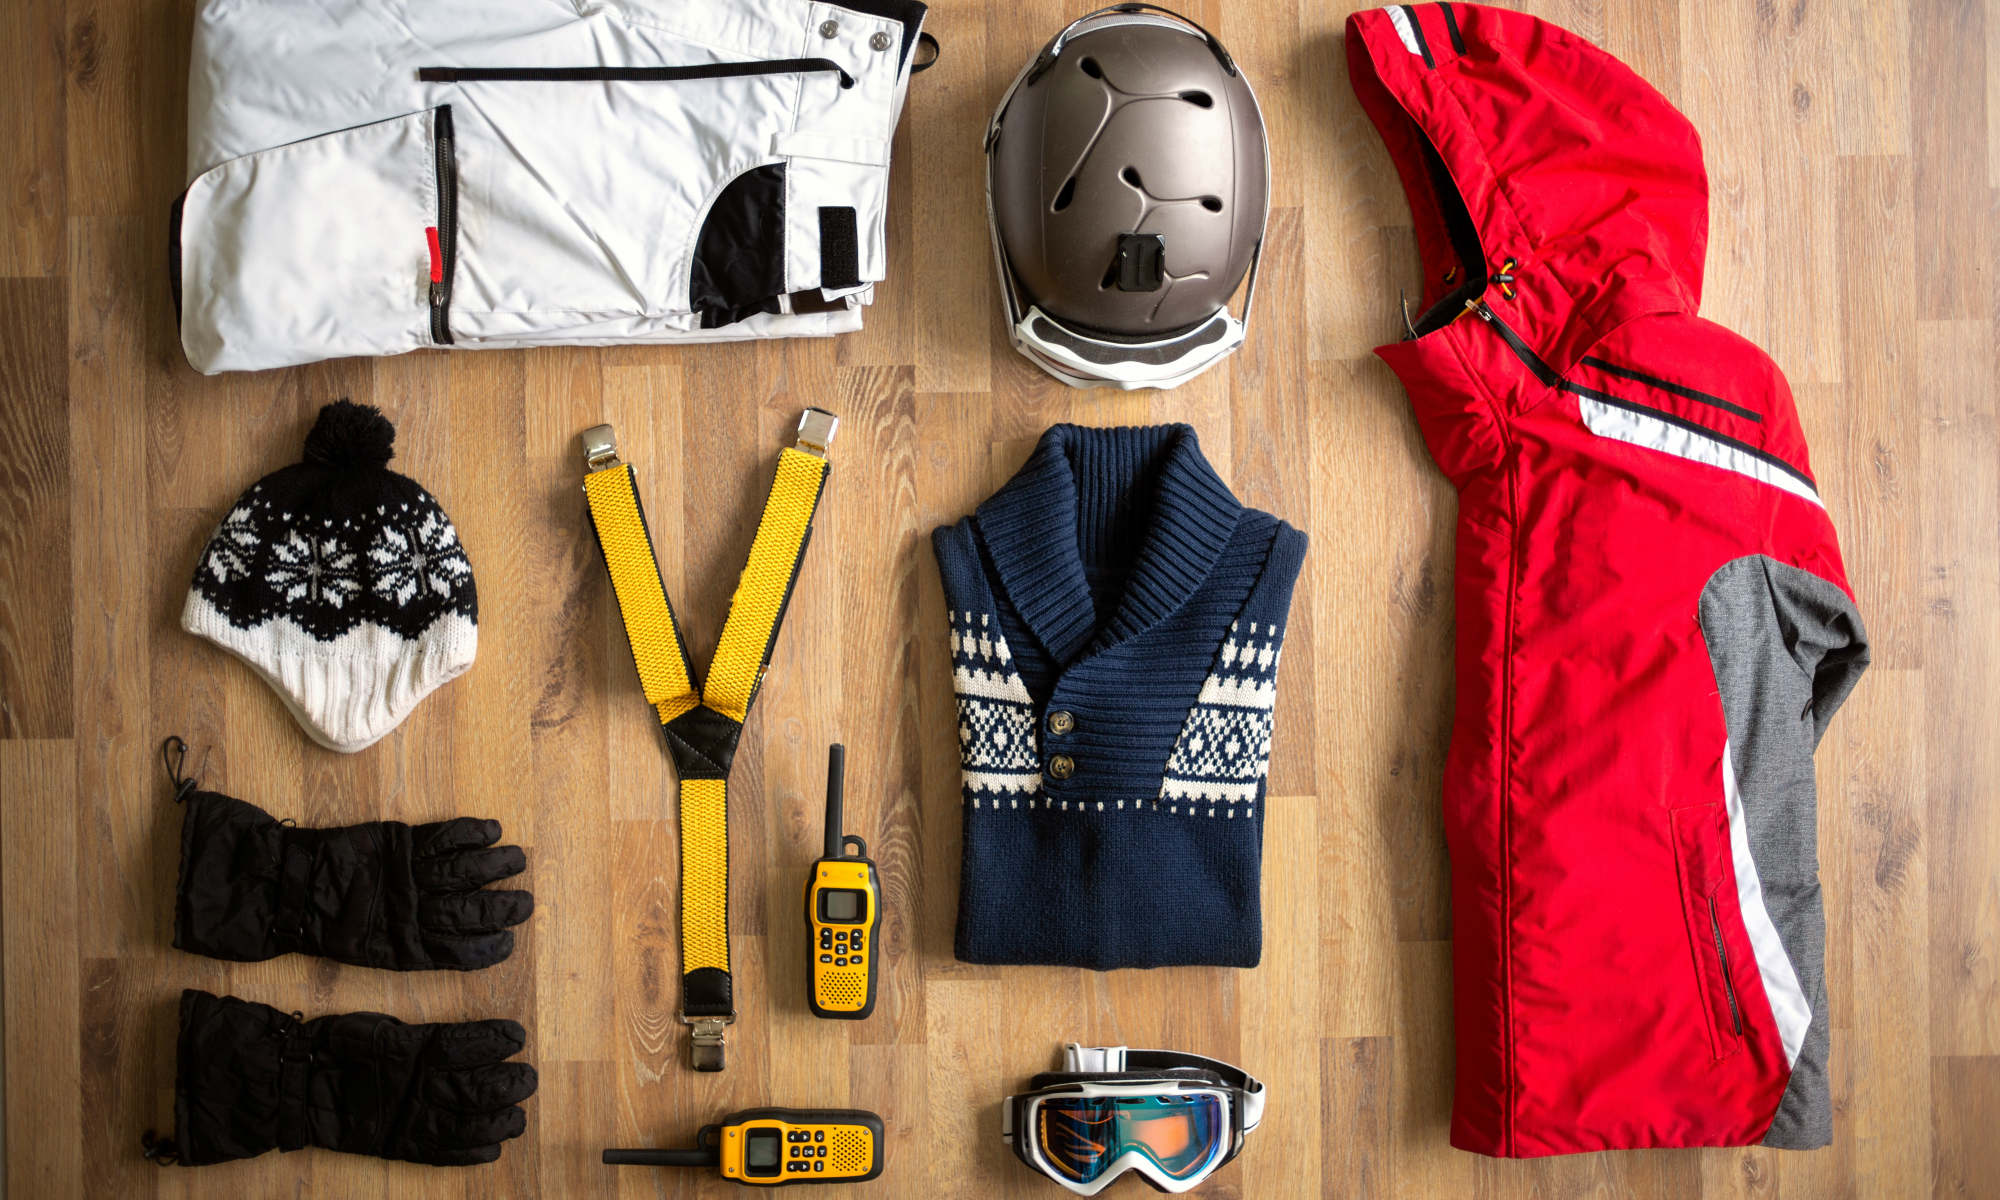 An overview of all things you need for a successful day on the slopes.